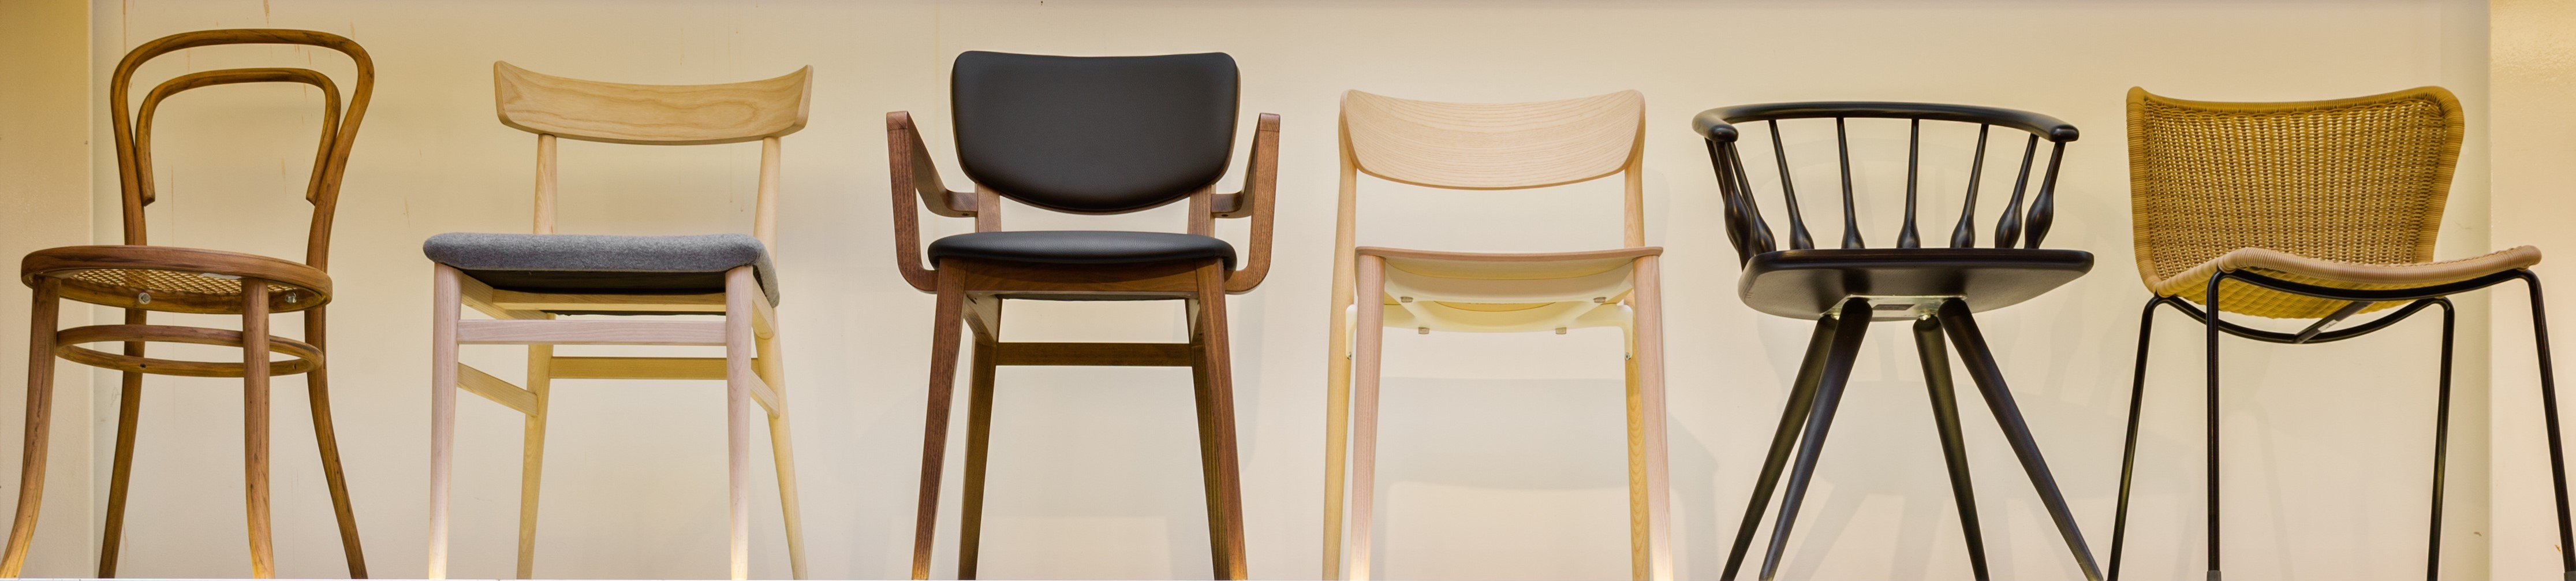 How To Specify A Chair From The Ground Up